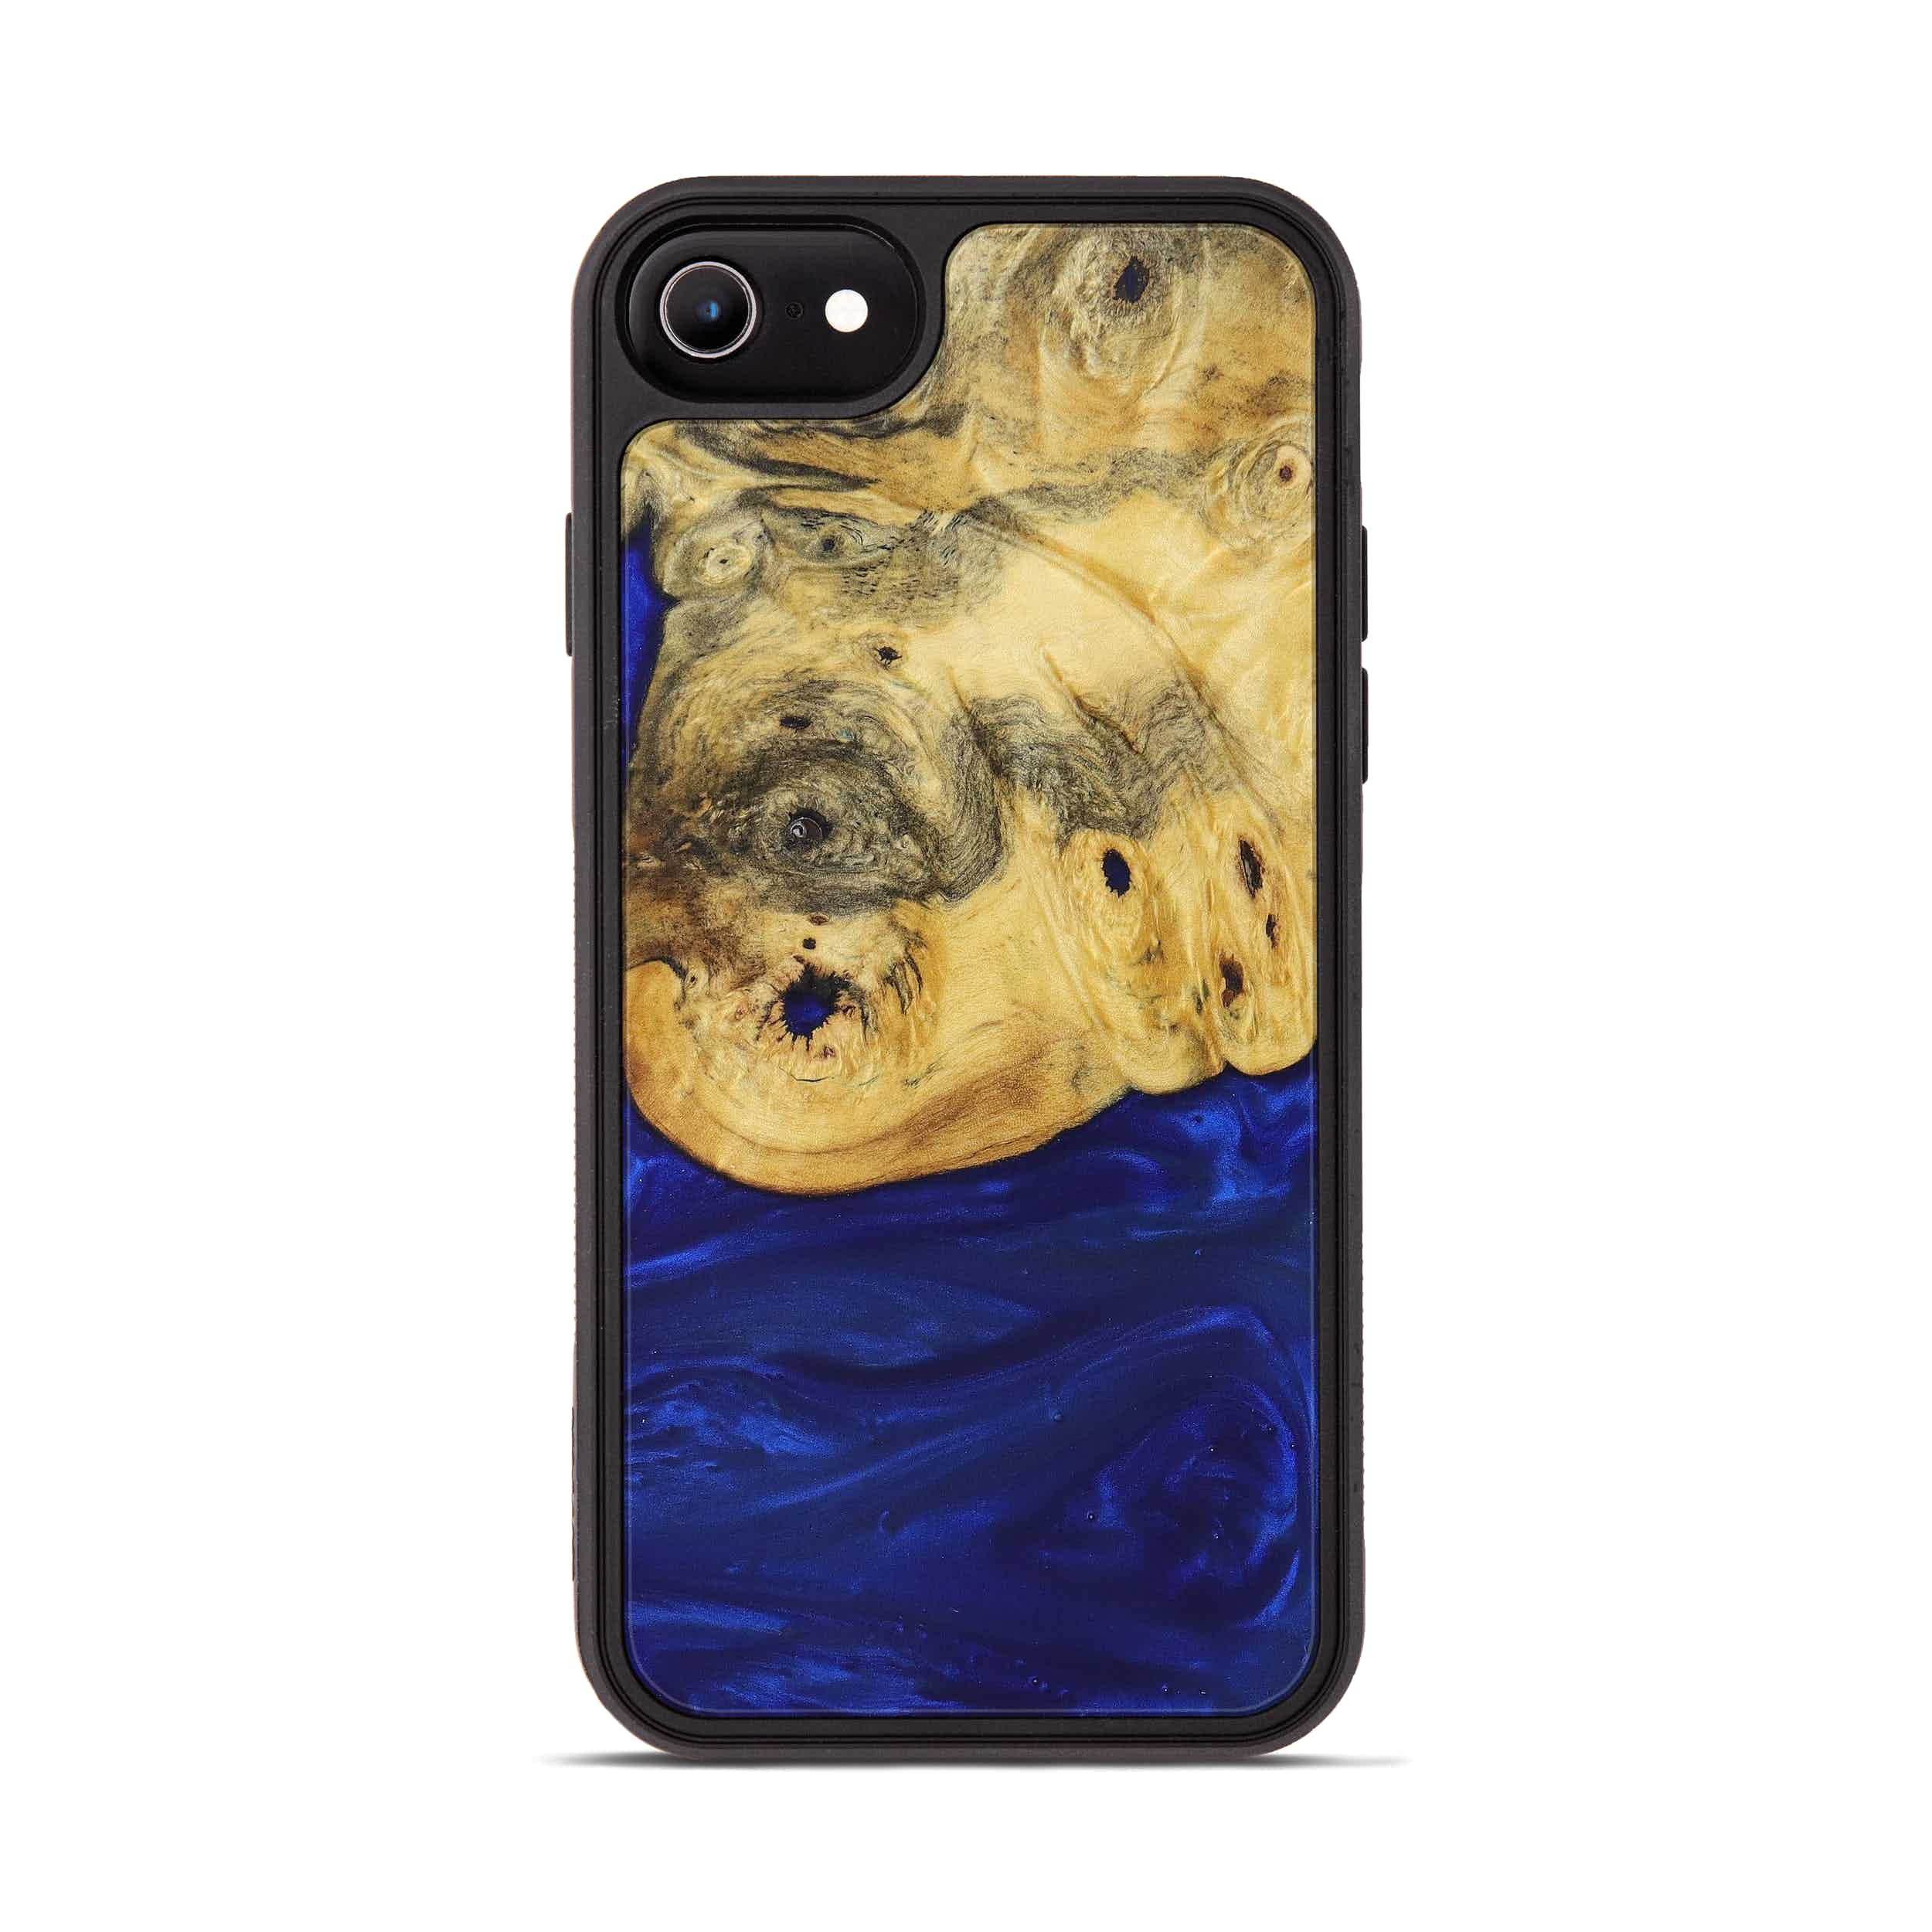 iPhone 6s Wood+Resin Phone Case - Loni (Dark Blue, 367198)